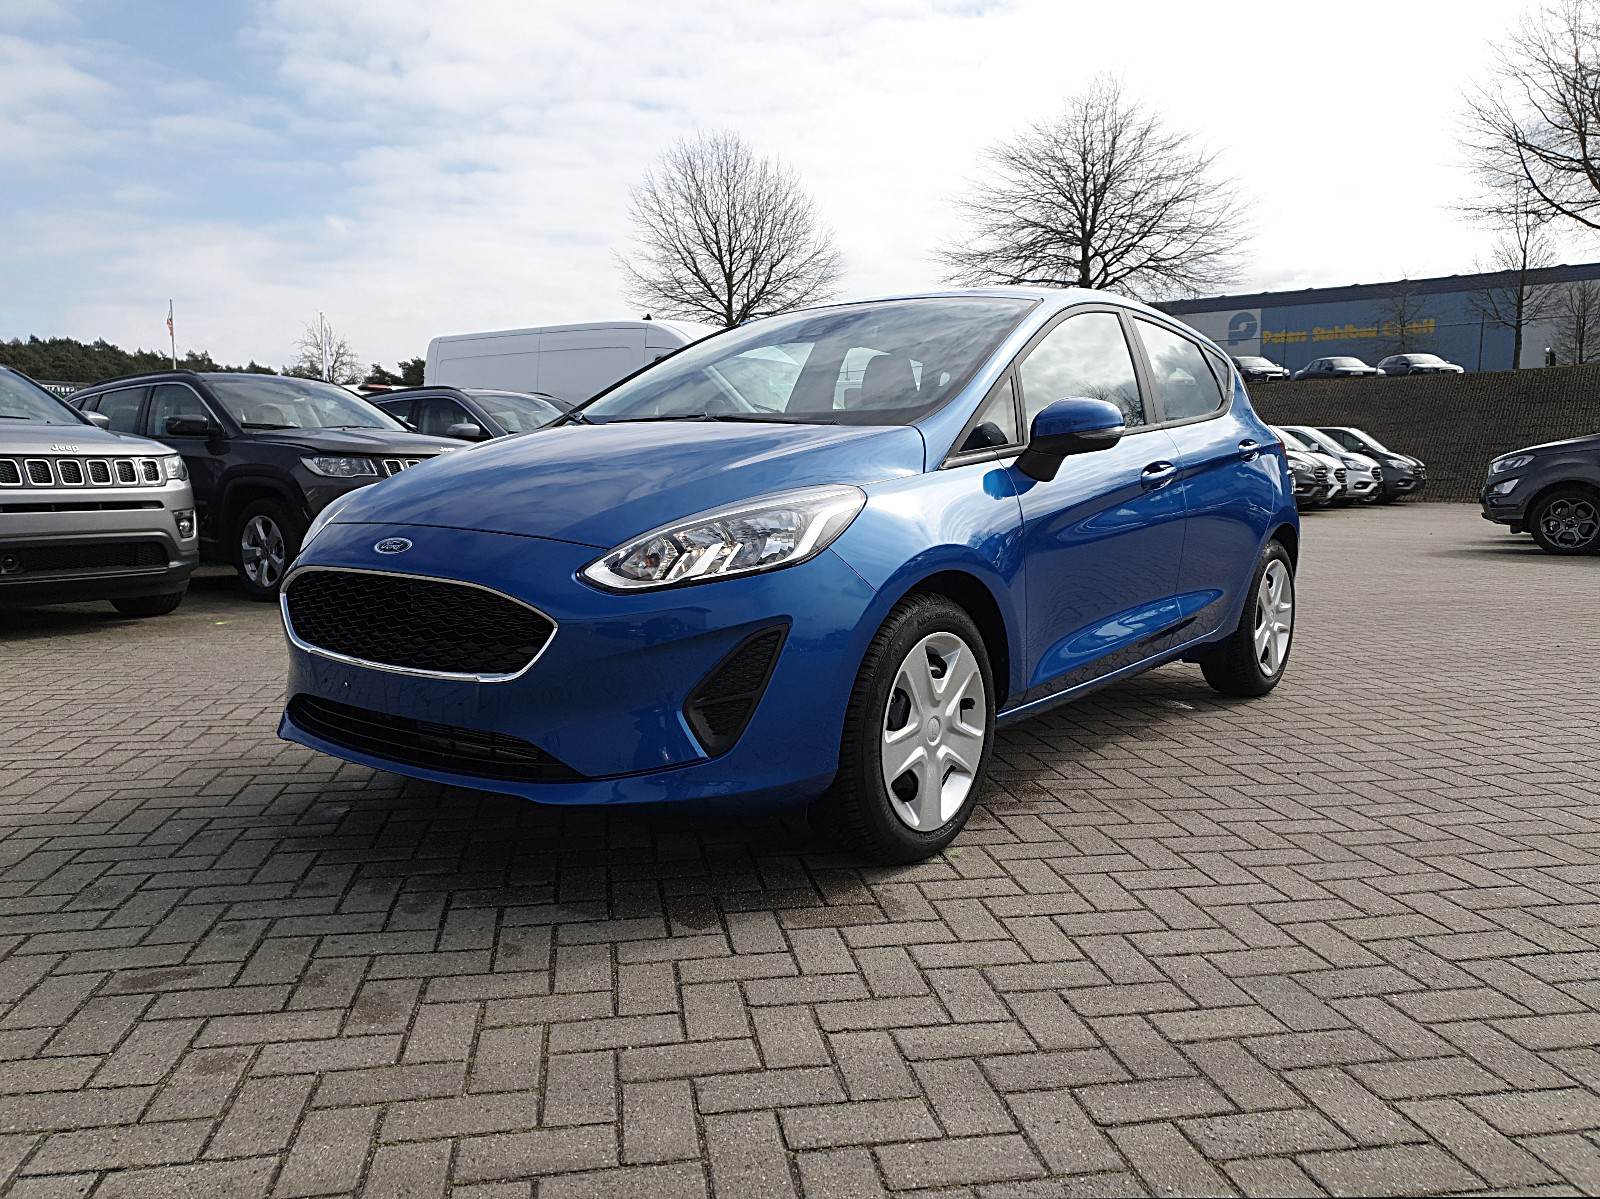 FORD FIESTA 1.1 85PS Trend 5-Türig Klima Navi Bluetooth PDC DAB+ Touch-Bilds Autosoft BV, Enschede